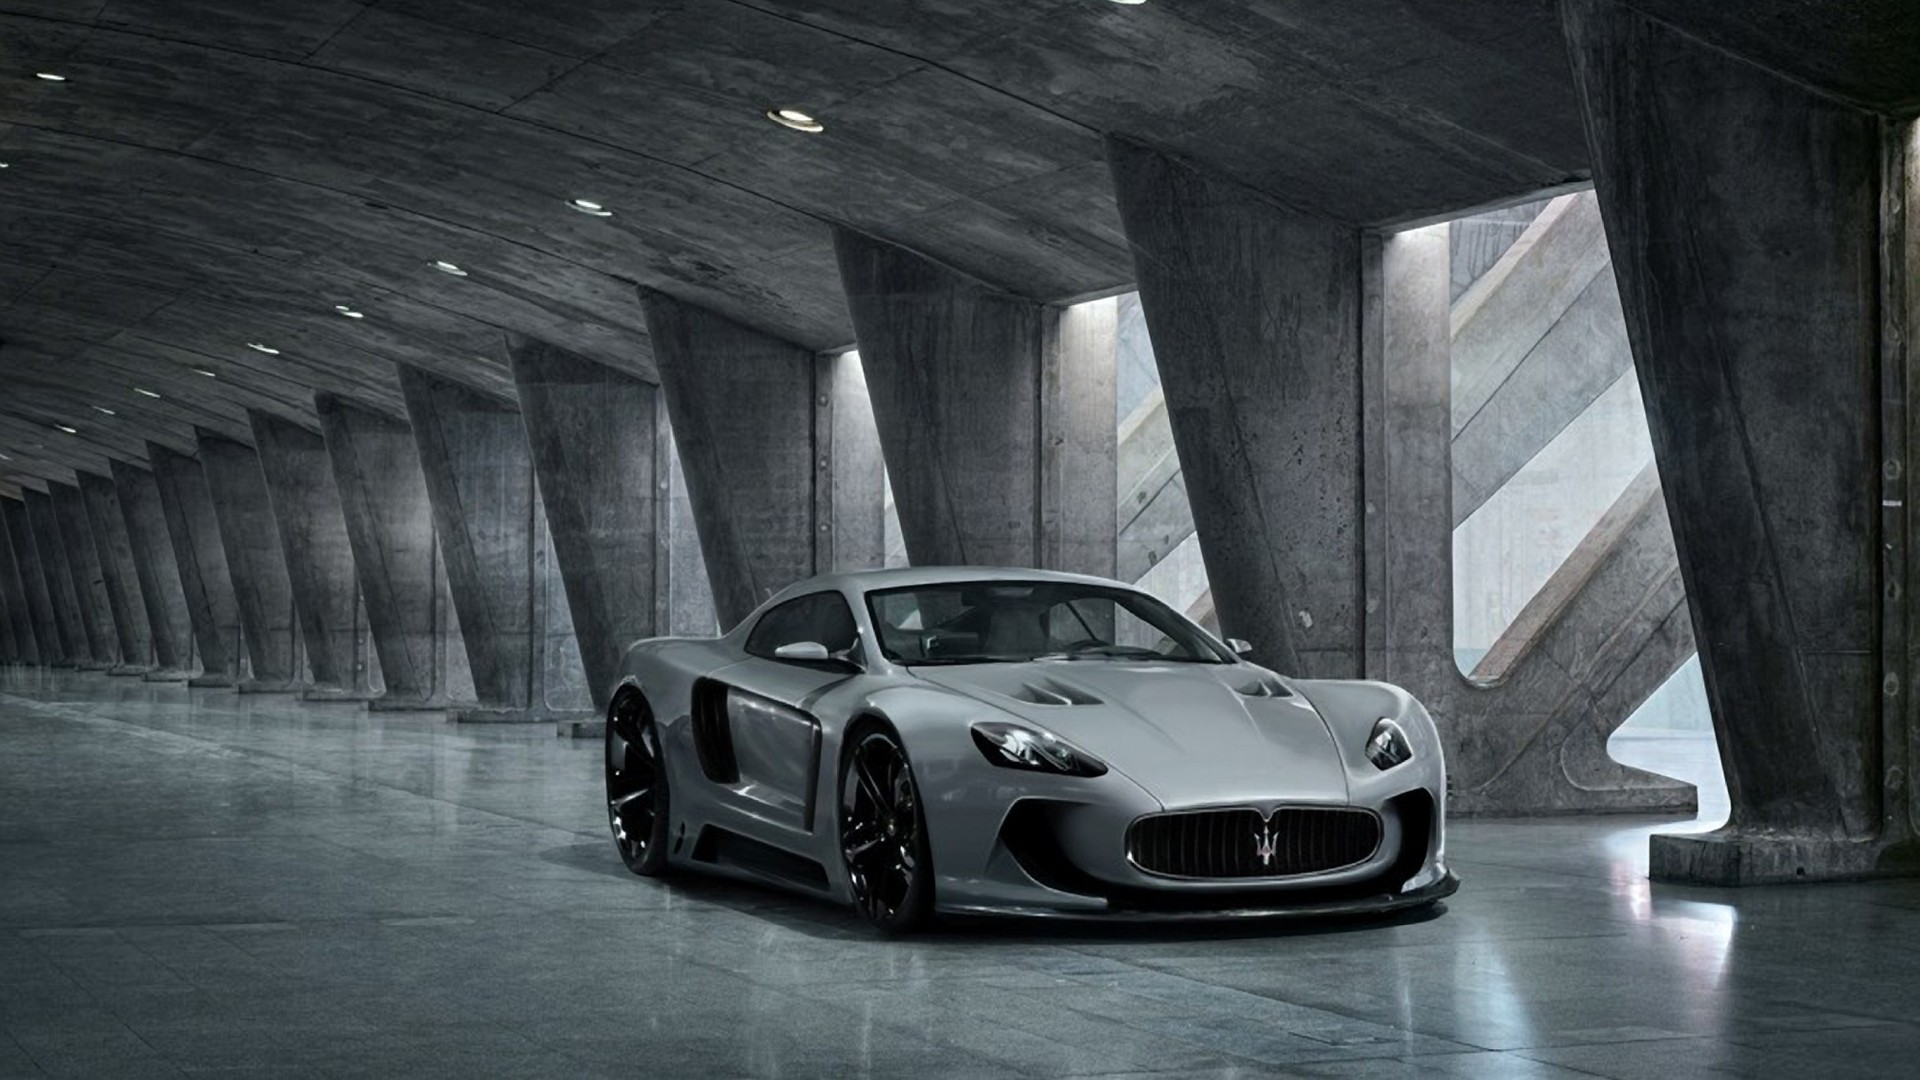 Cars Maserati Wallpaper 1920x1080 Cars Maserati Vehicles Concept 1920x1080